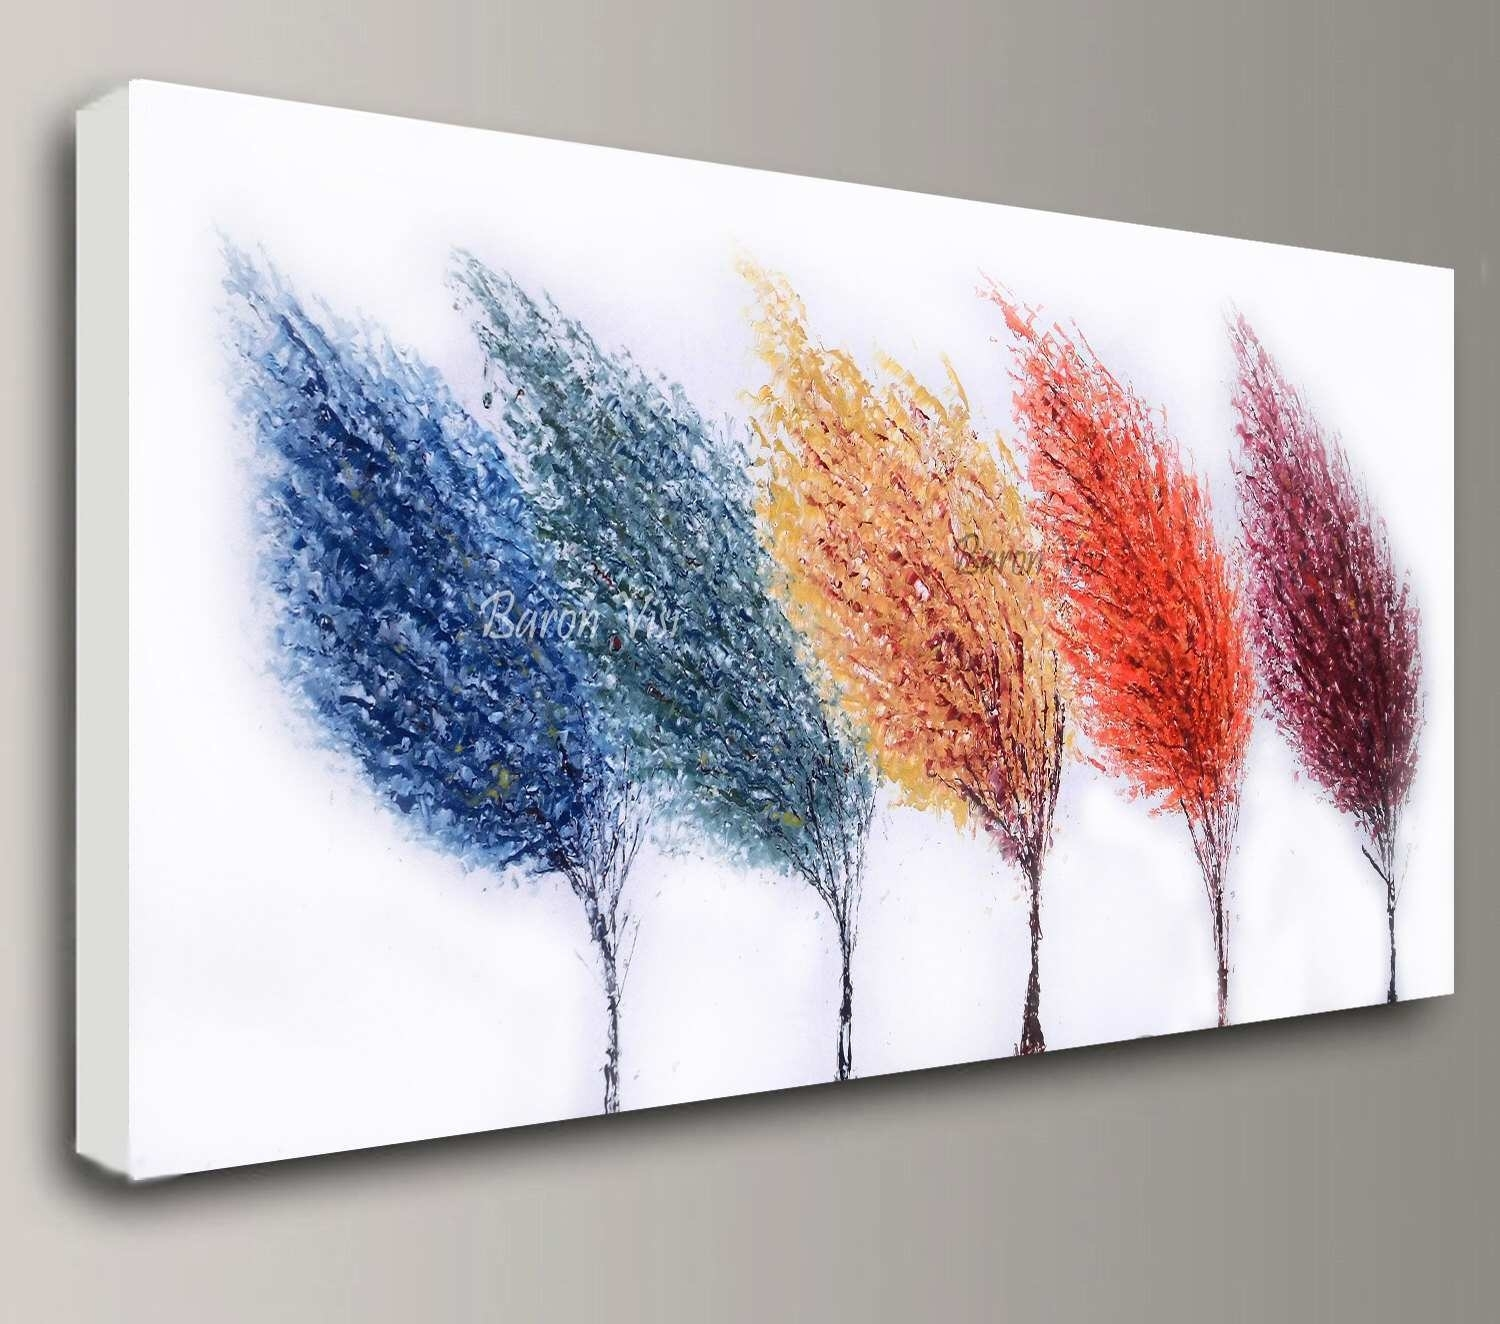 Abstract Canvas Wall Art Best Of Abstract Painting Acrylic Painting Intended For Current Acrylic Wall Art (View 7 of 20)